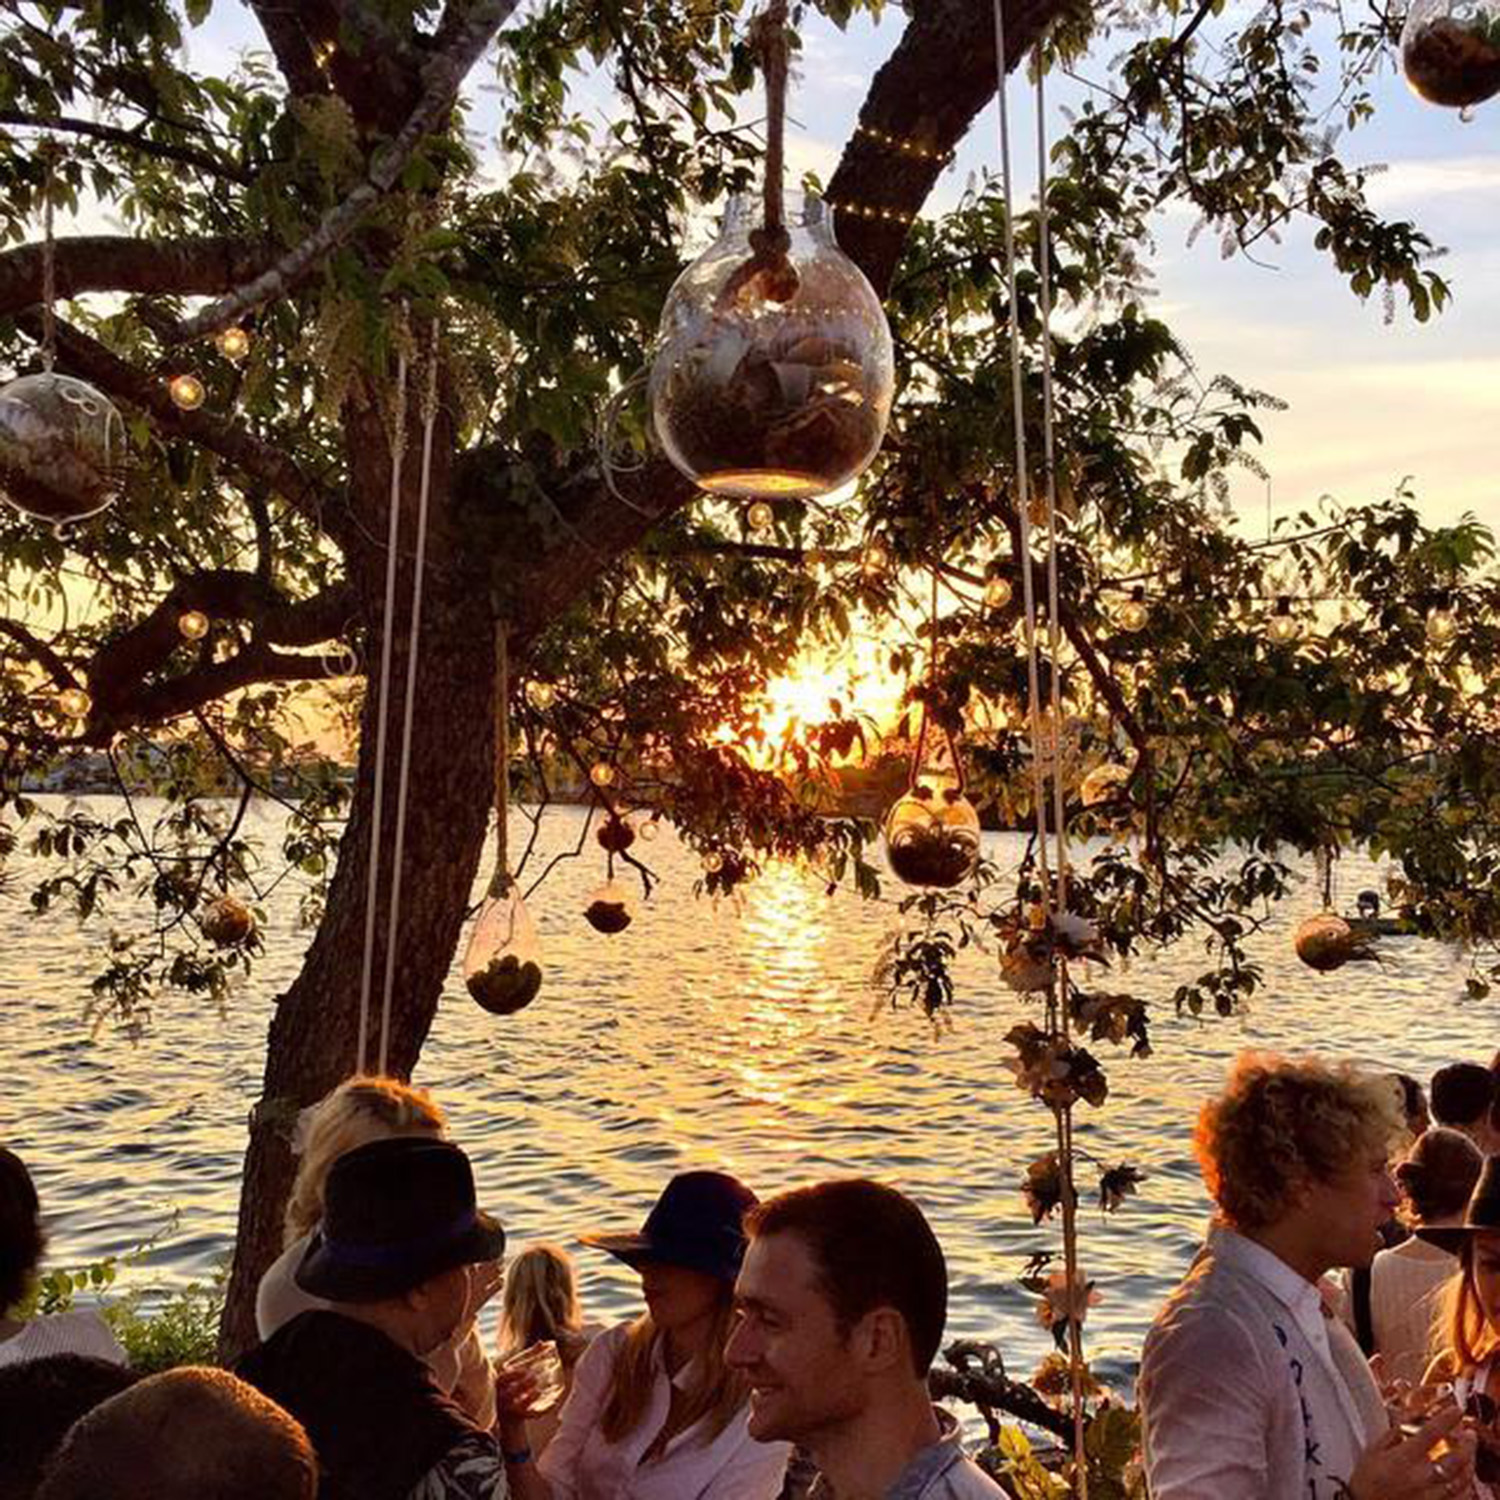 The golden sunset reflects off the ocean and through the trees at an outdoor gathering. Fairy lights are wrapped around the tree and lights hang from the branches